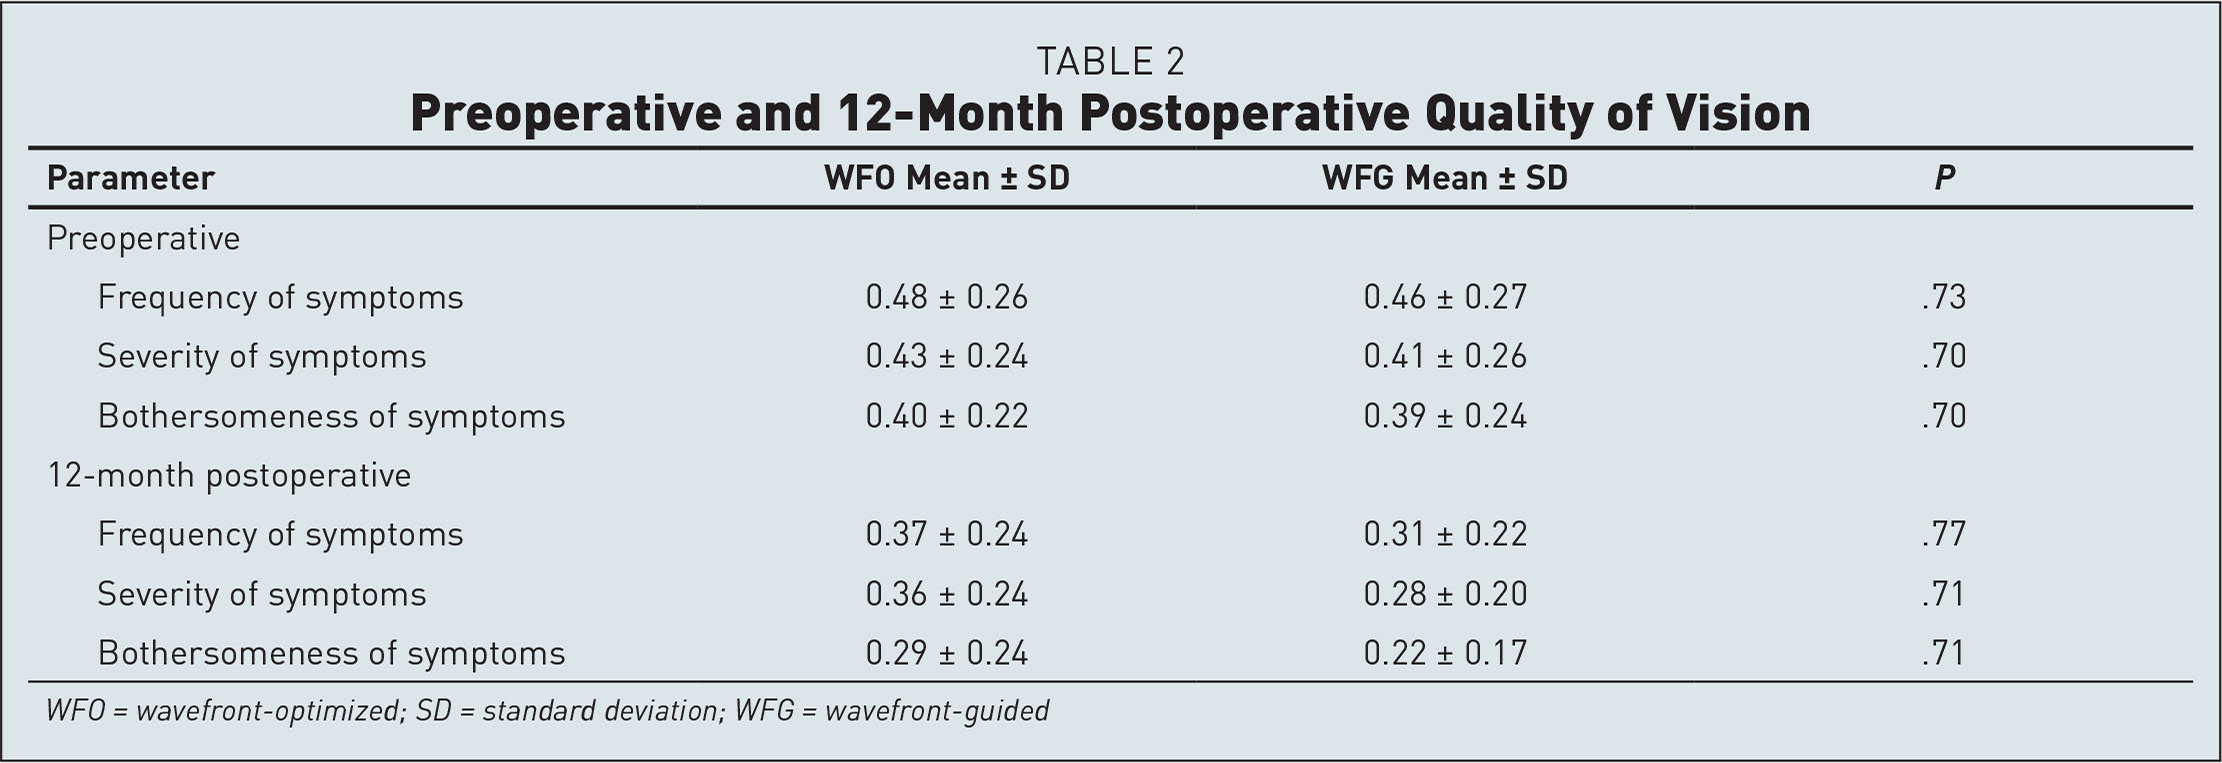 Preoperative and 12-Month Postoperative Quality of Vision